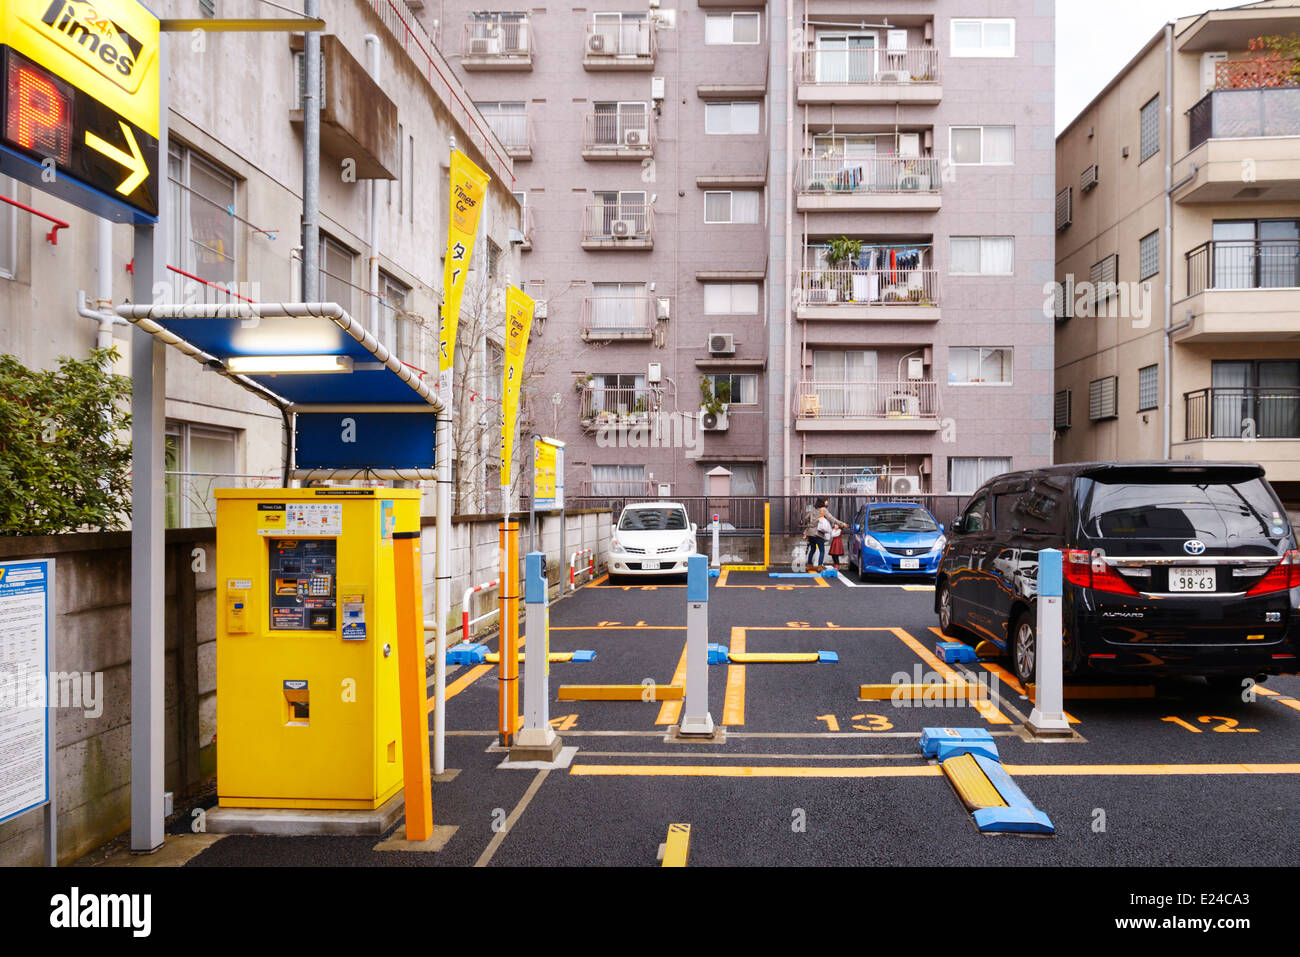 Automated paid parking lot in Tokyo, Japan - Stock Image